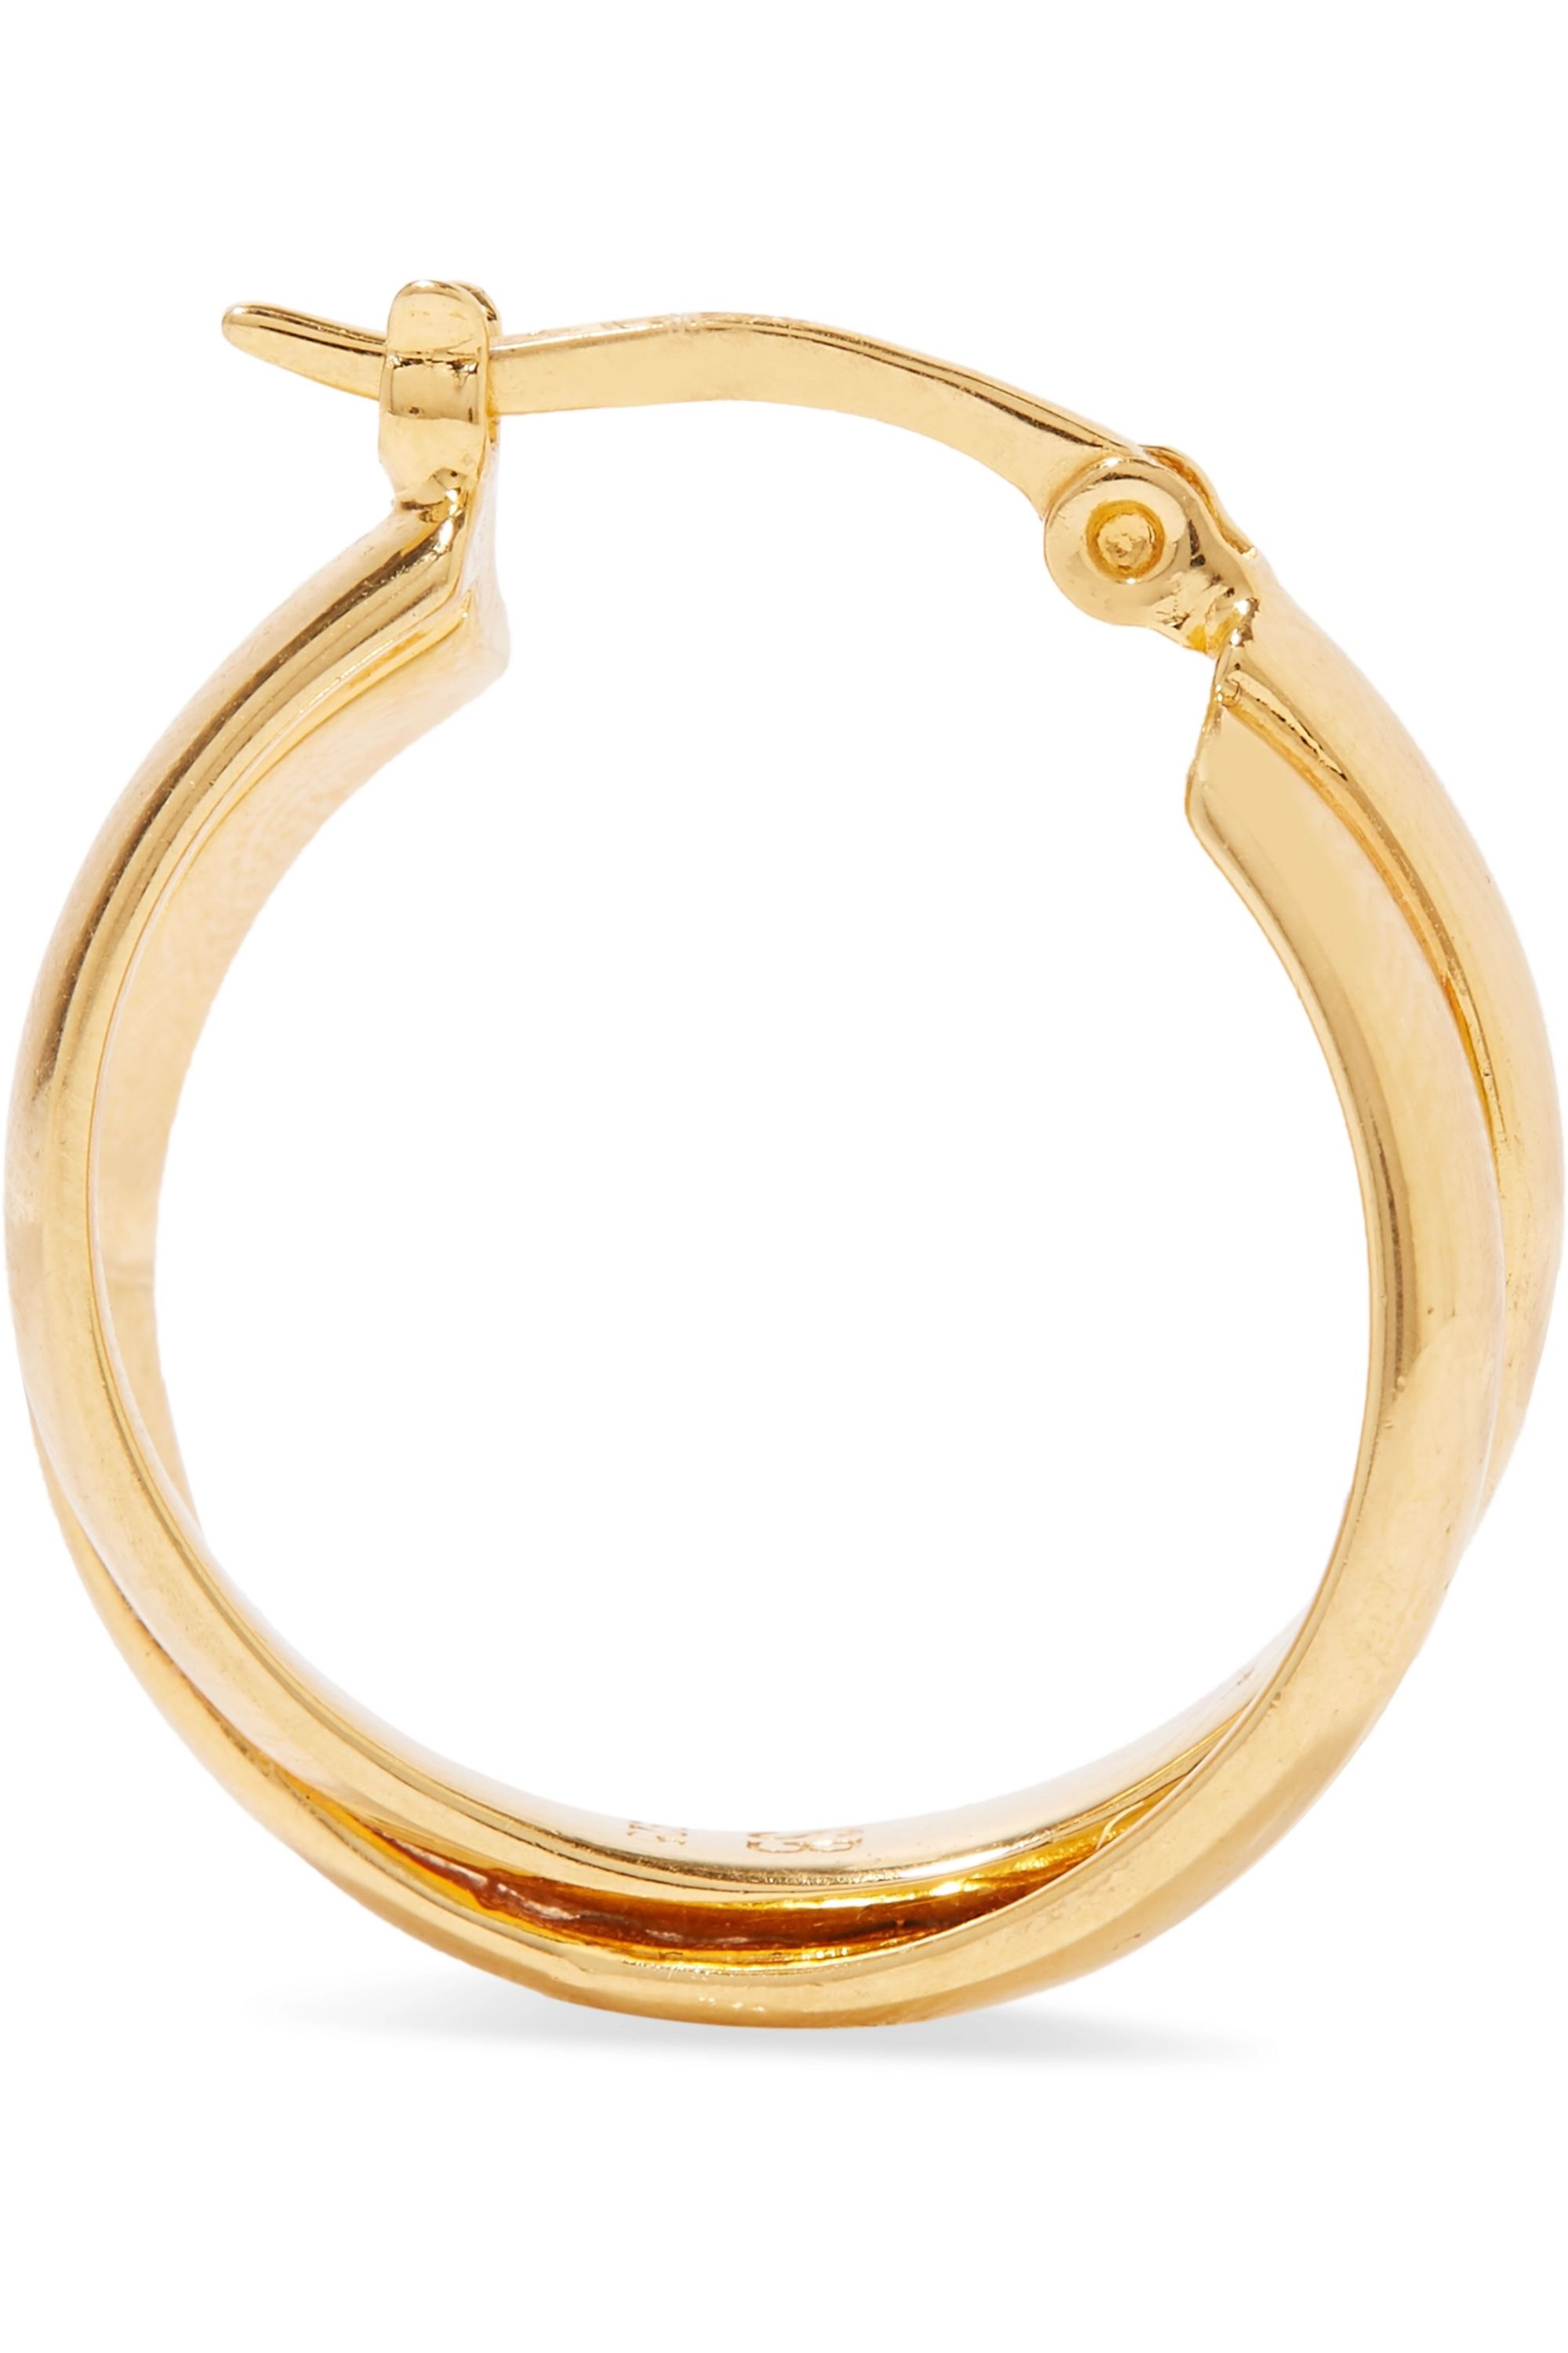 Sophie Buhai Gold vermeil hoop earrings